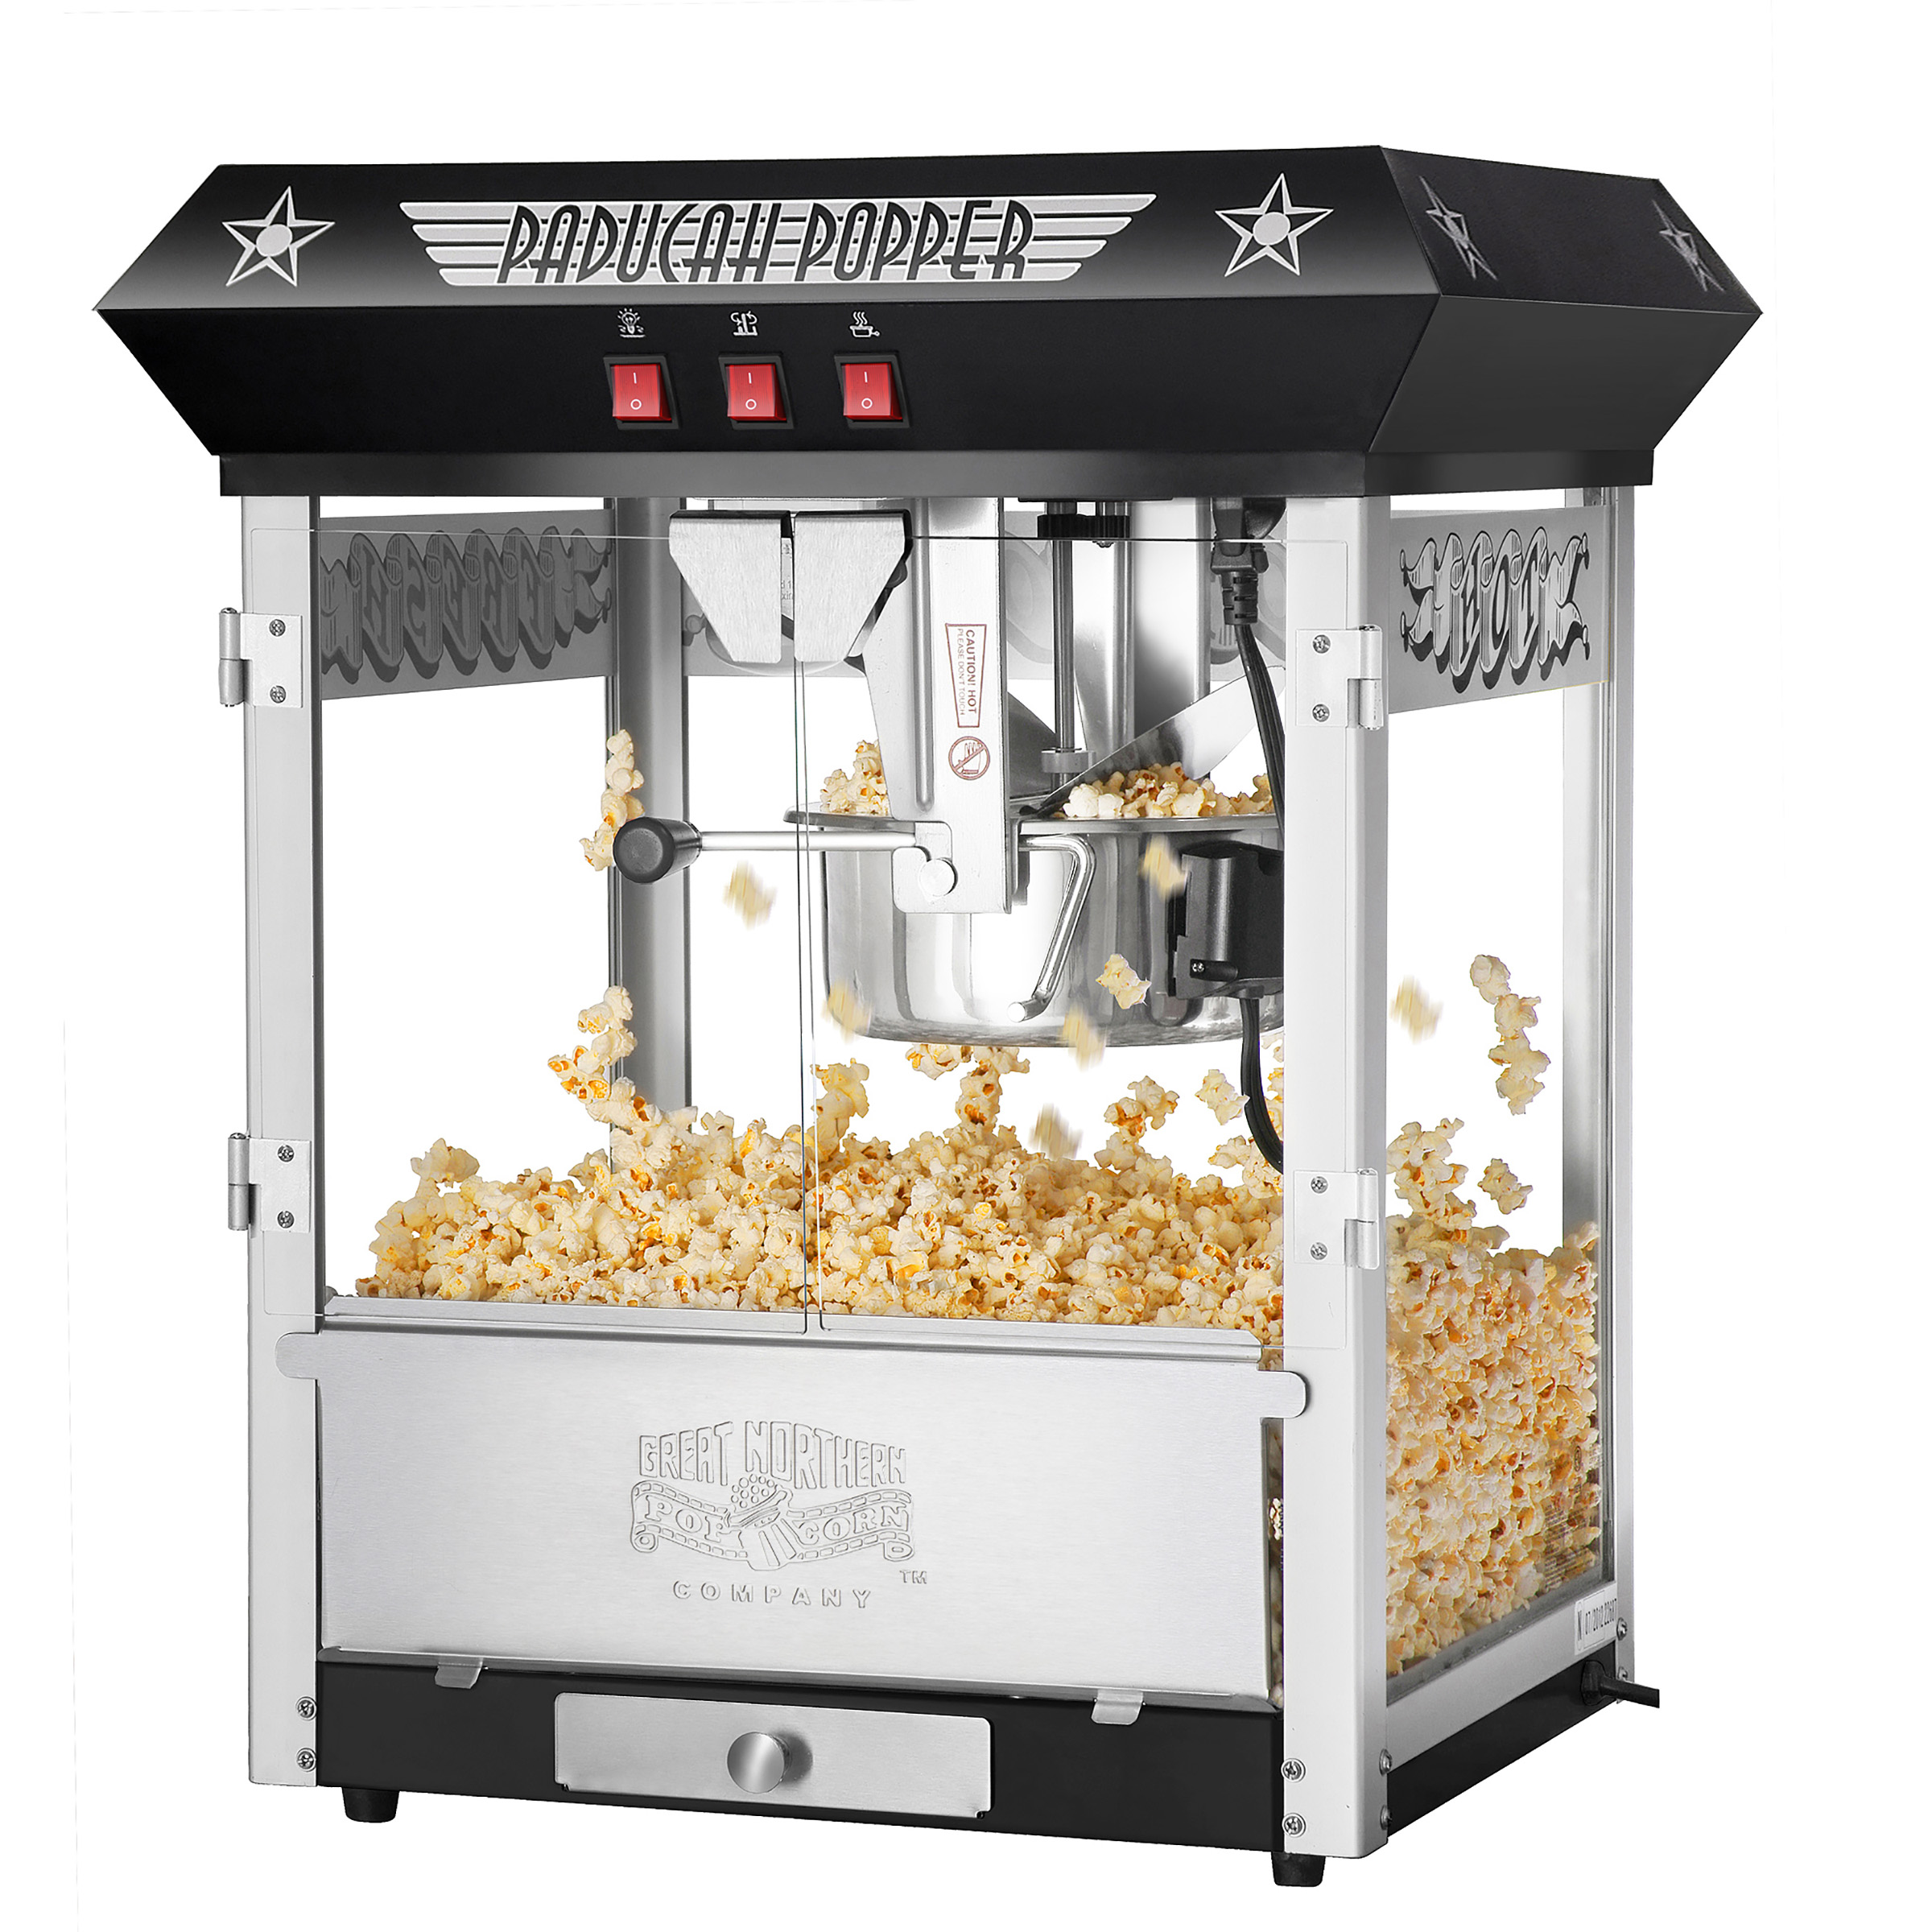 Paducah Black Popcorn Popper Machine, 8 oz by Great Northern Popcorn